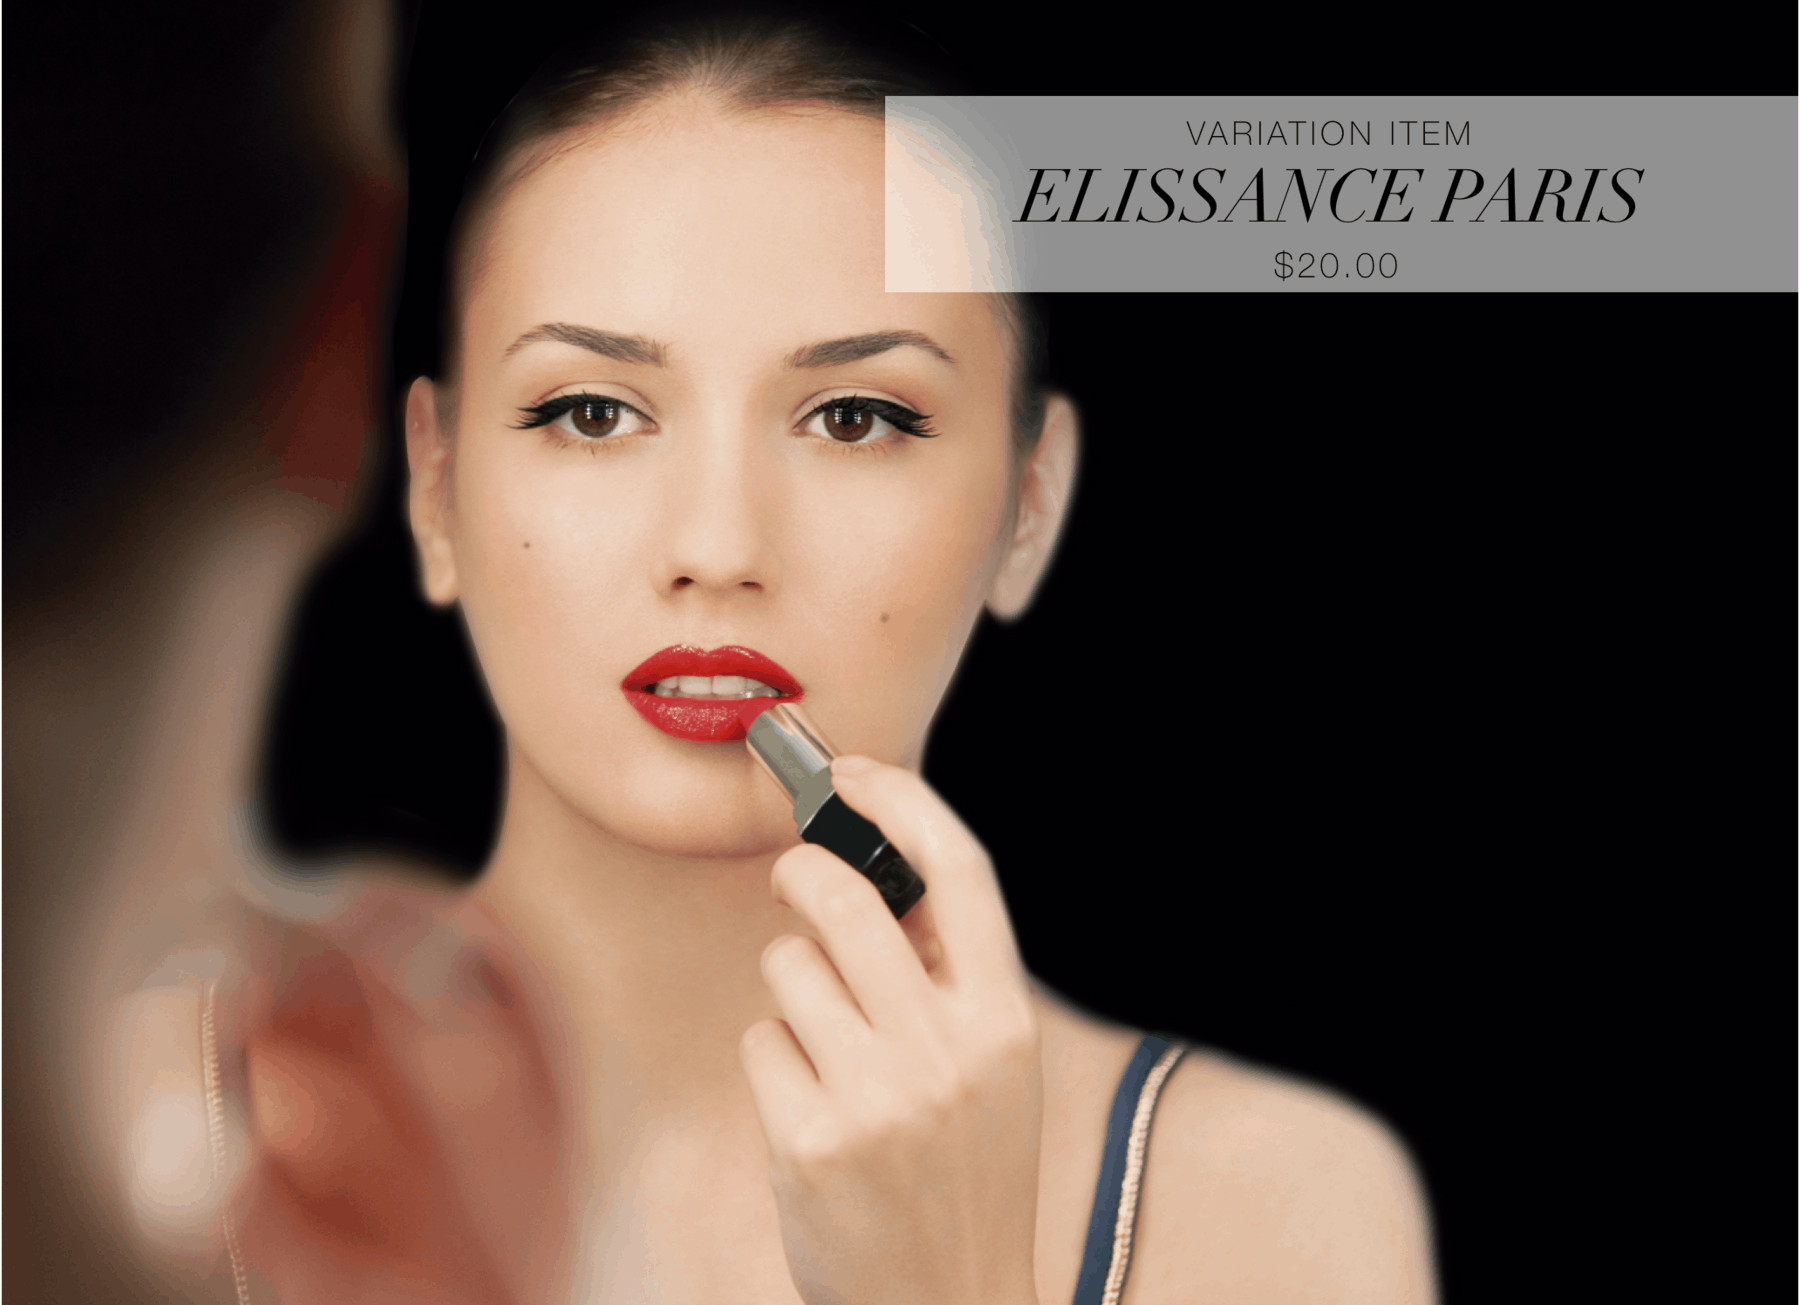 OuiPlease Je t'aime Elissance Paris French luxury red lipstick